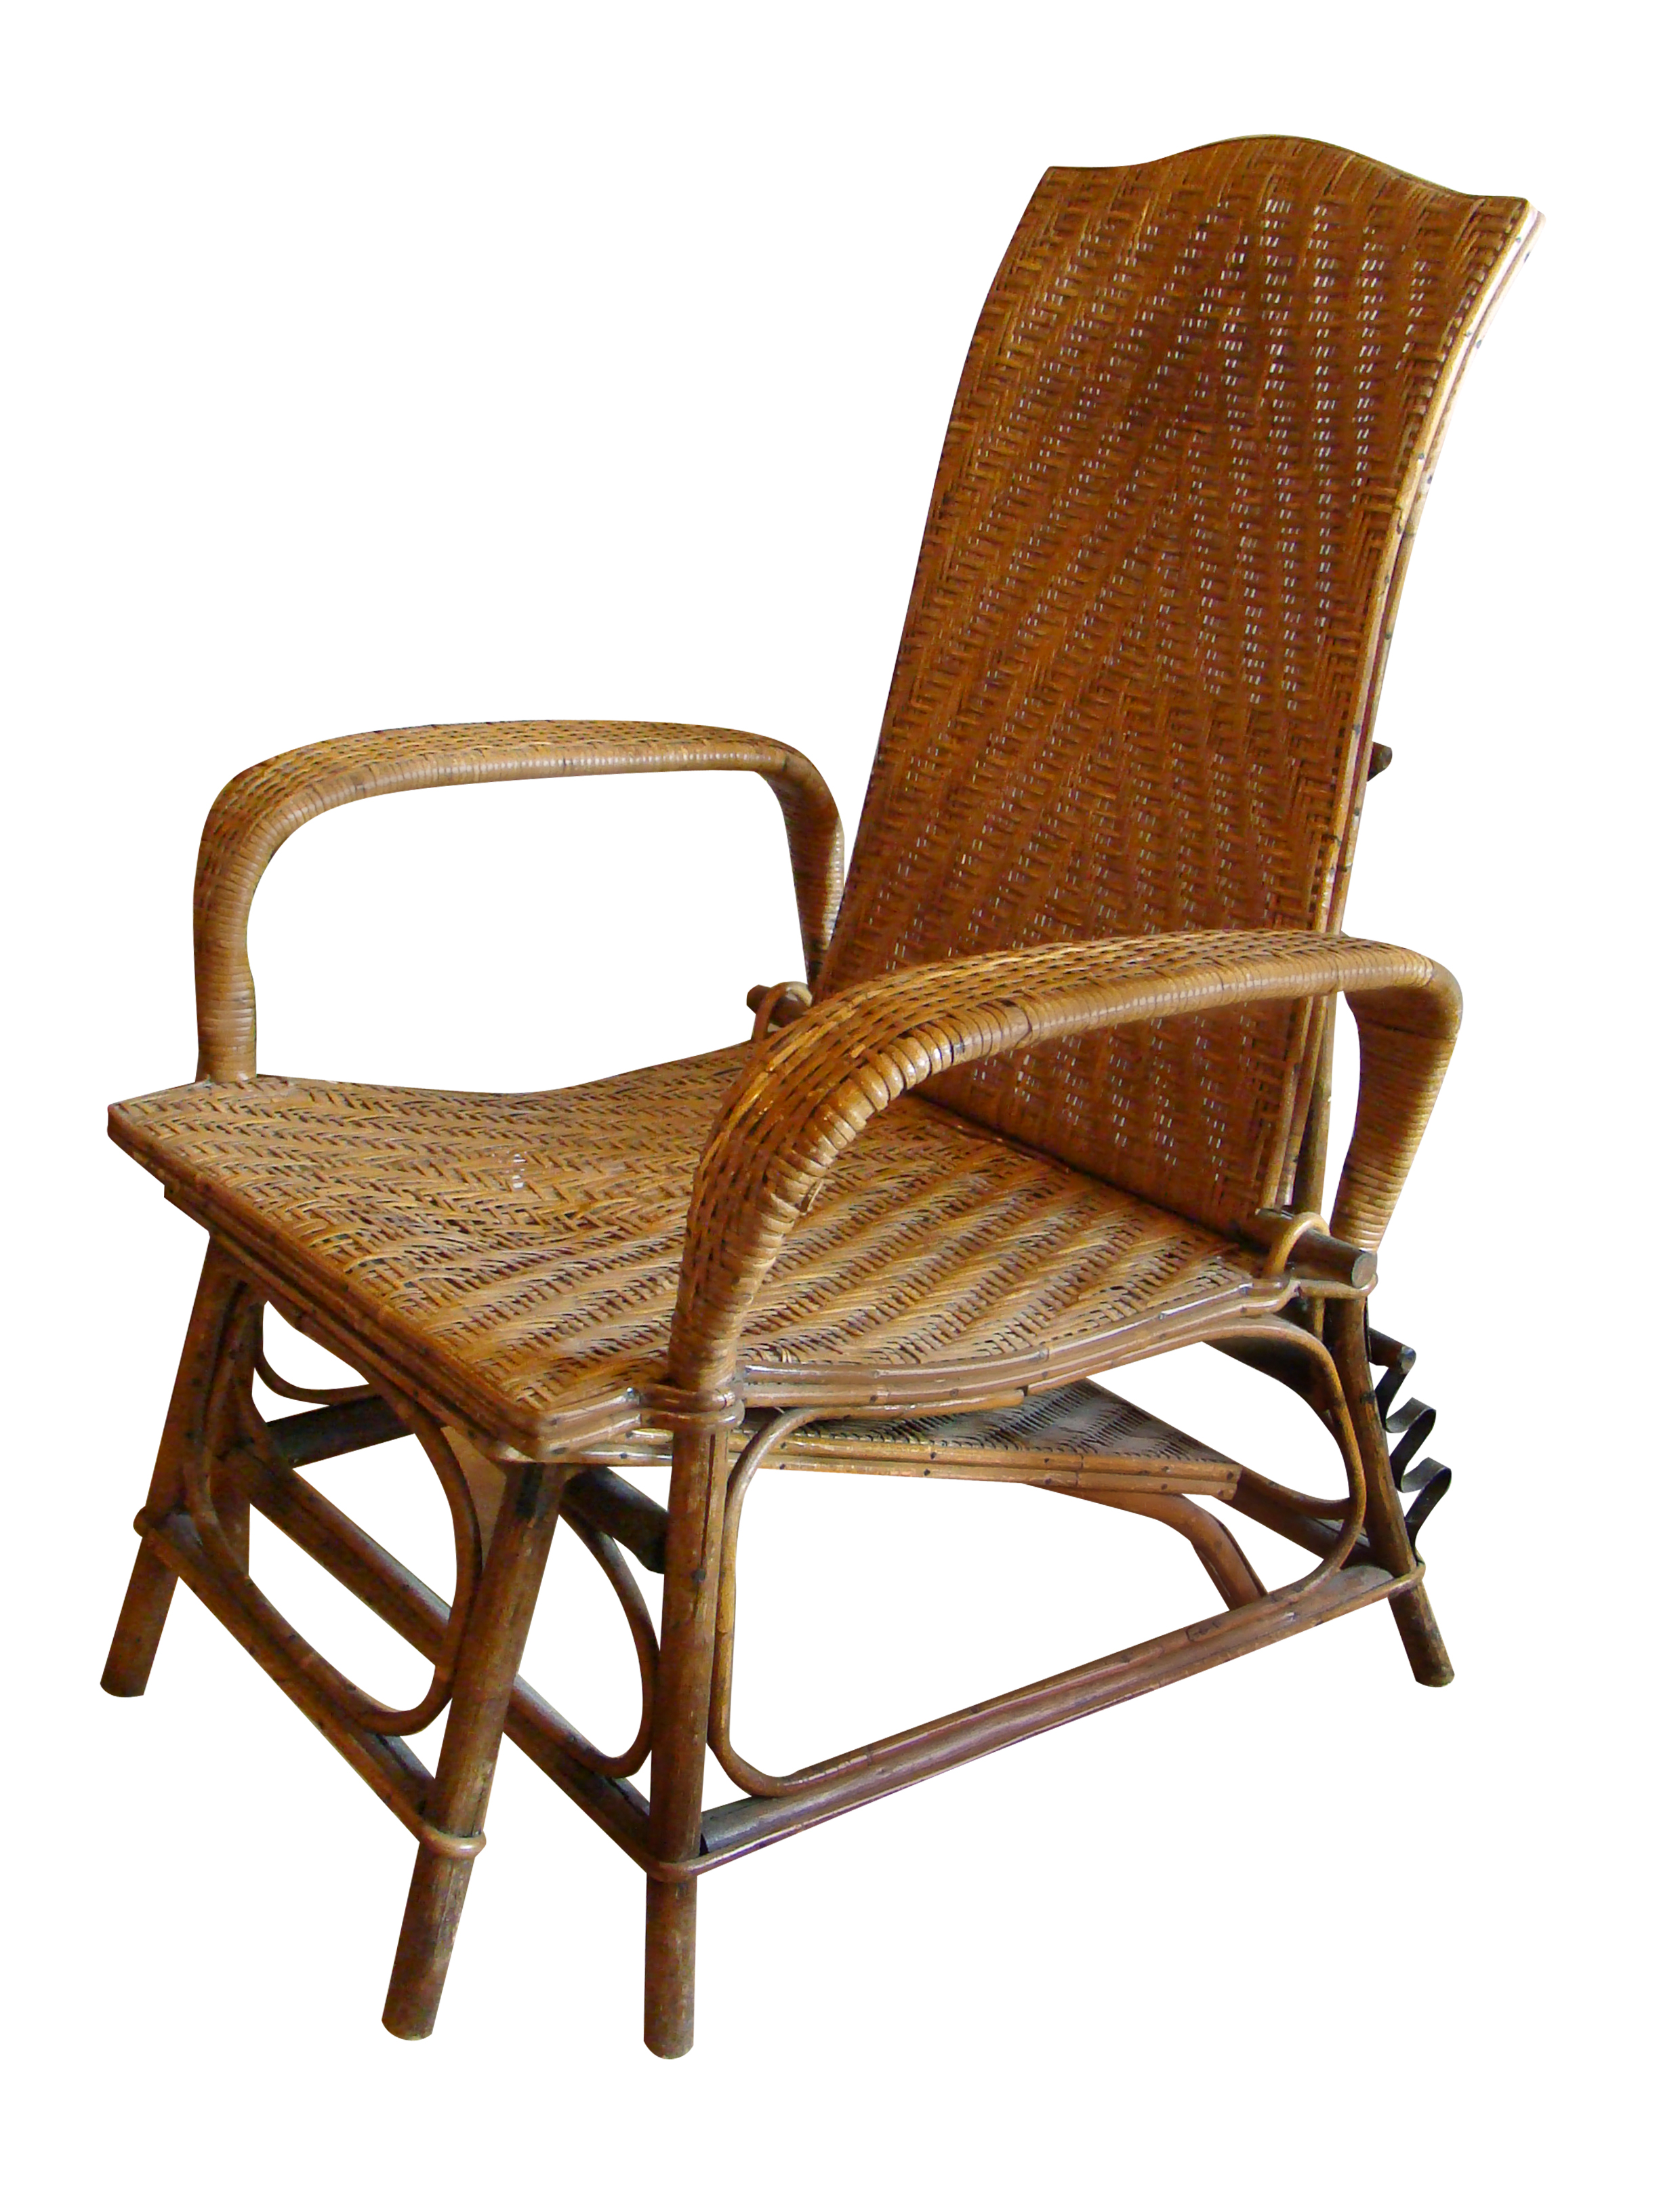 Colonial Era Bamboo Chase with Removable Footrest Adjustable Back